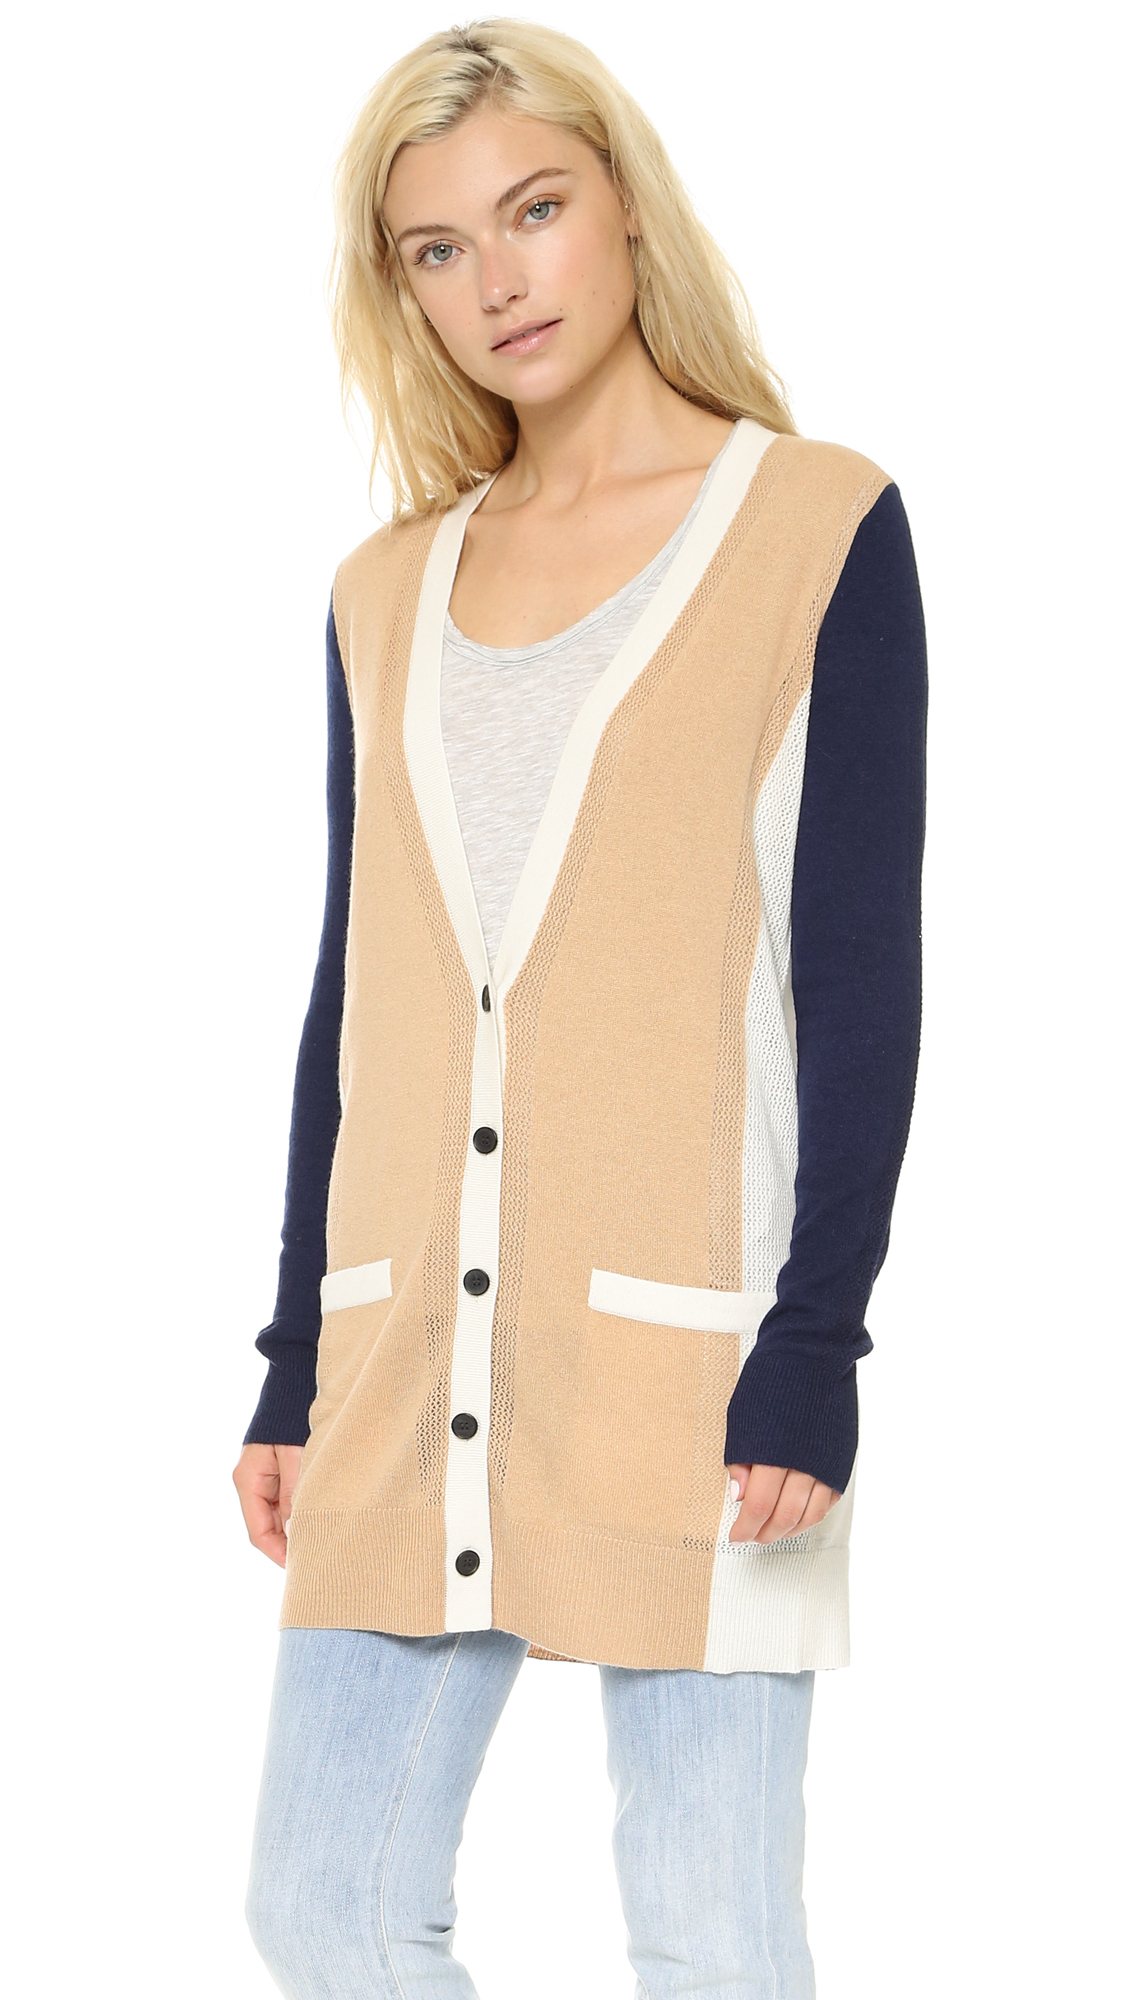 Vince Colorblock Cashmere Cardigan - Camel/blue Marine in Natural ...